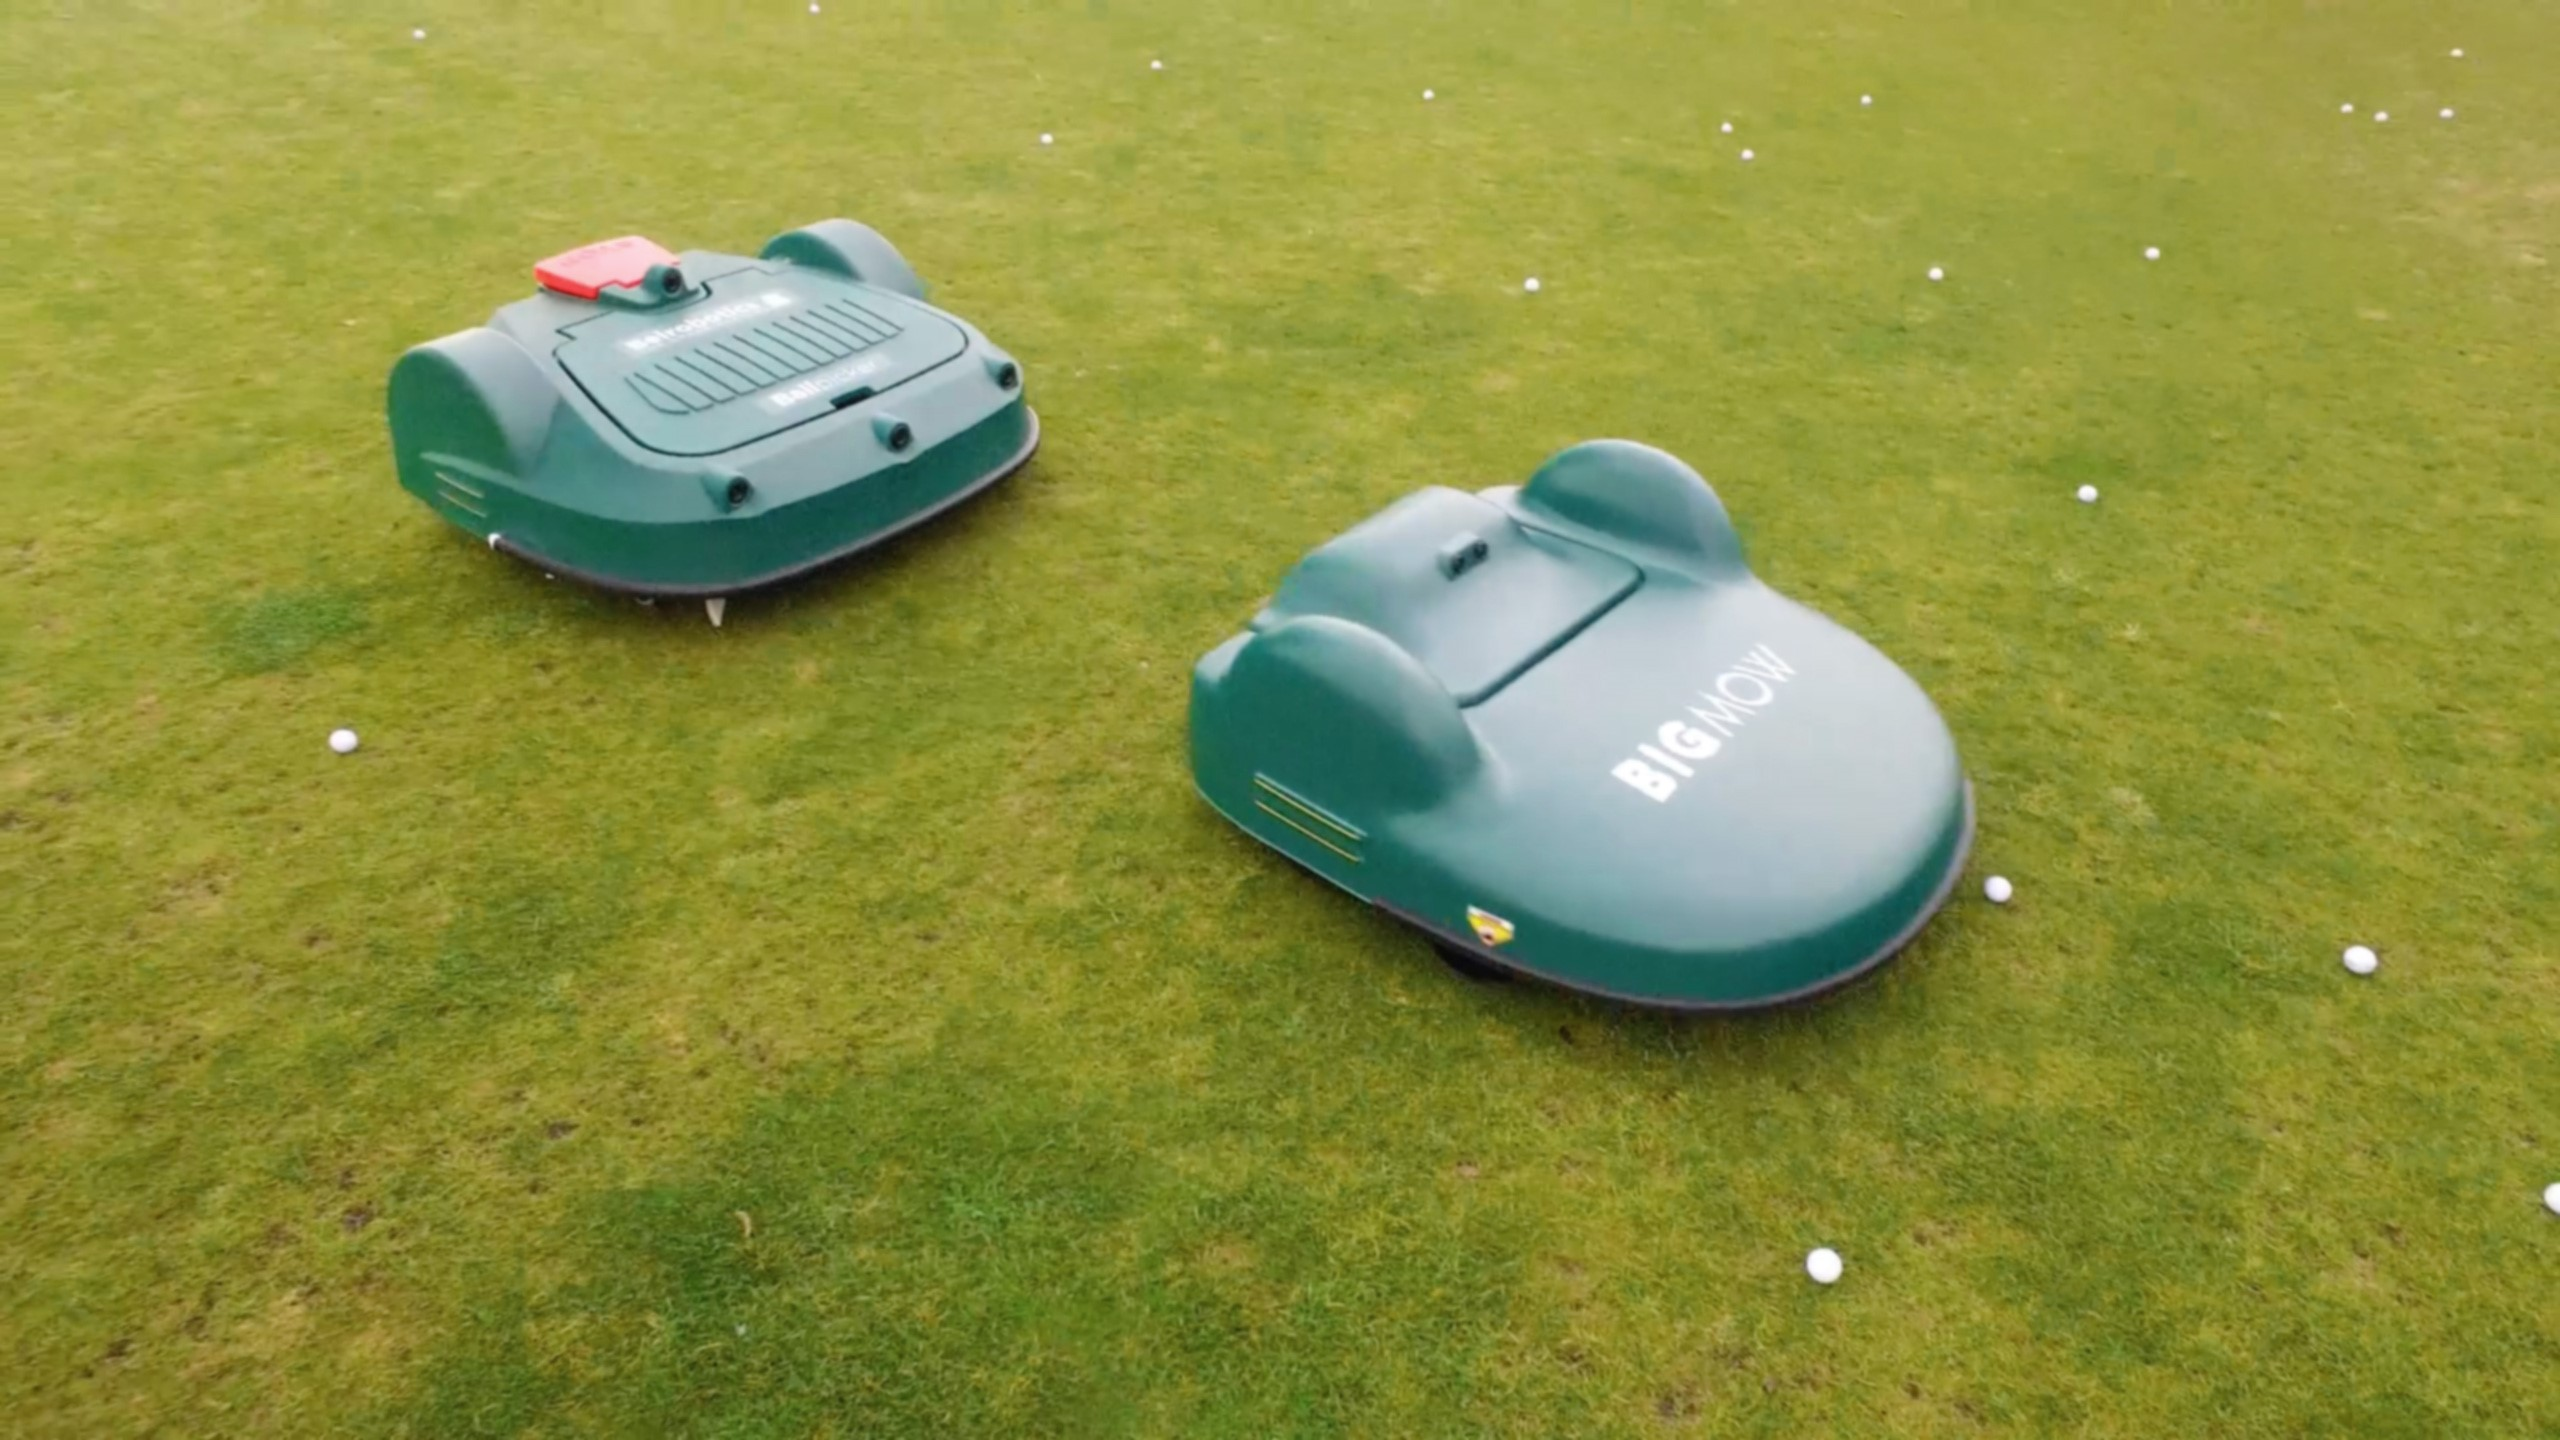 Automated robots for driving range outfield maintenance